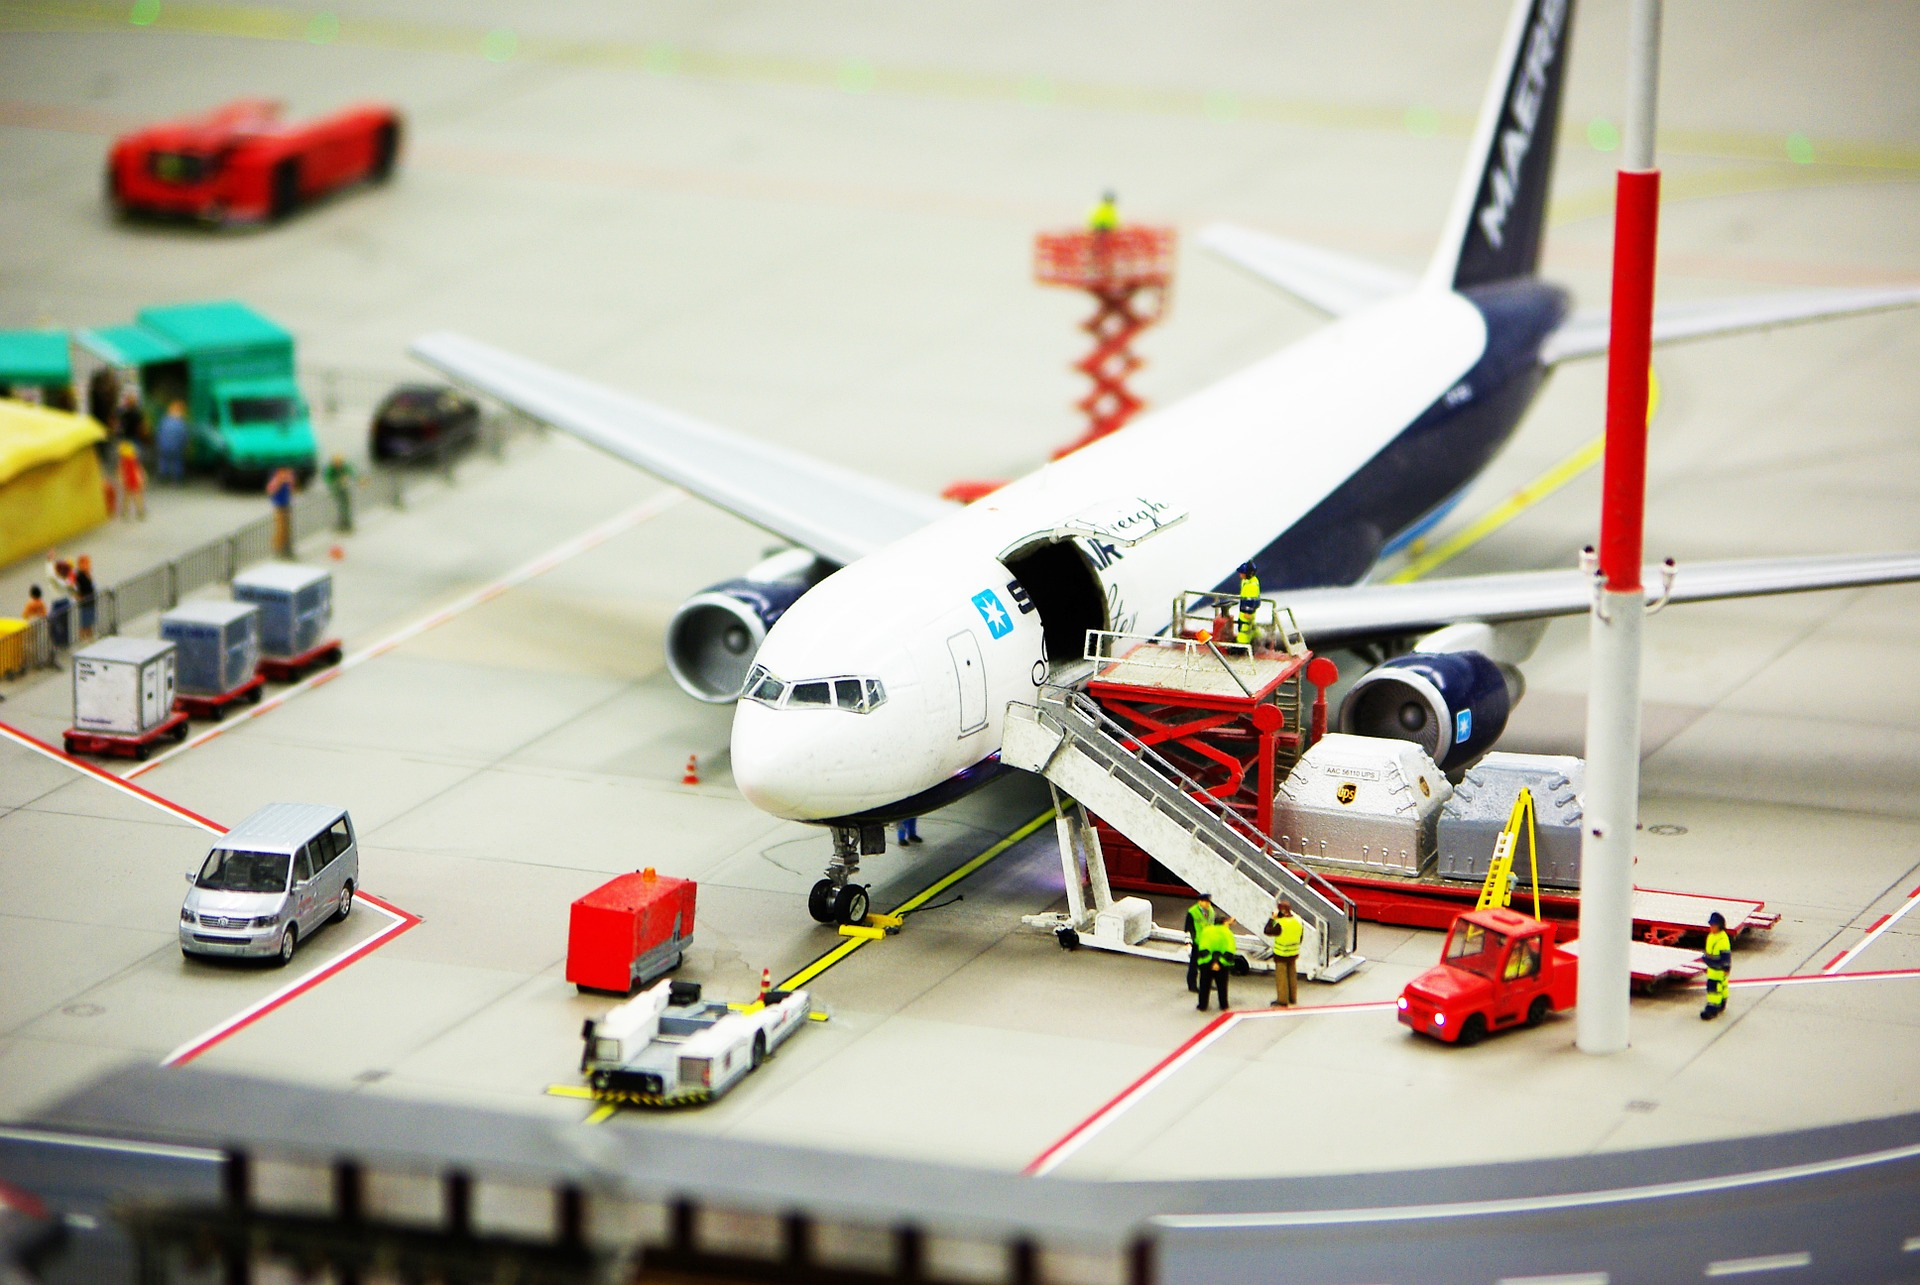 A bird's eye view of a scissor lift pallet truck in action in an airport.